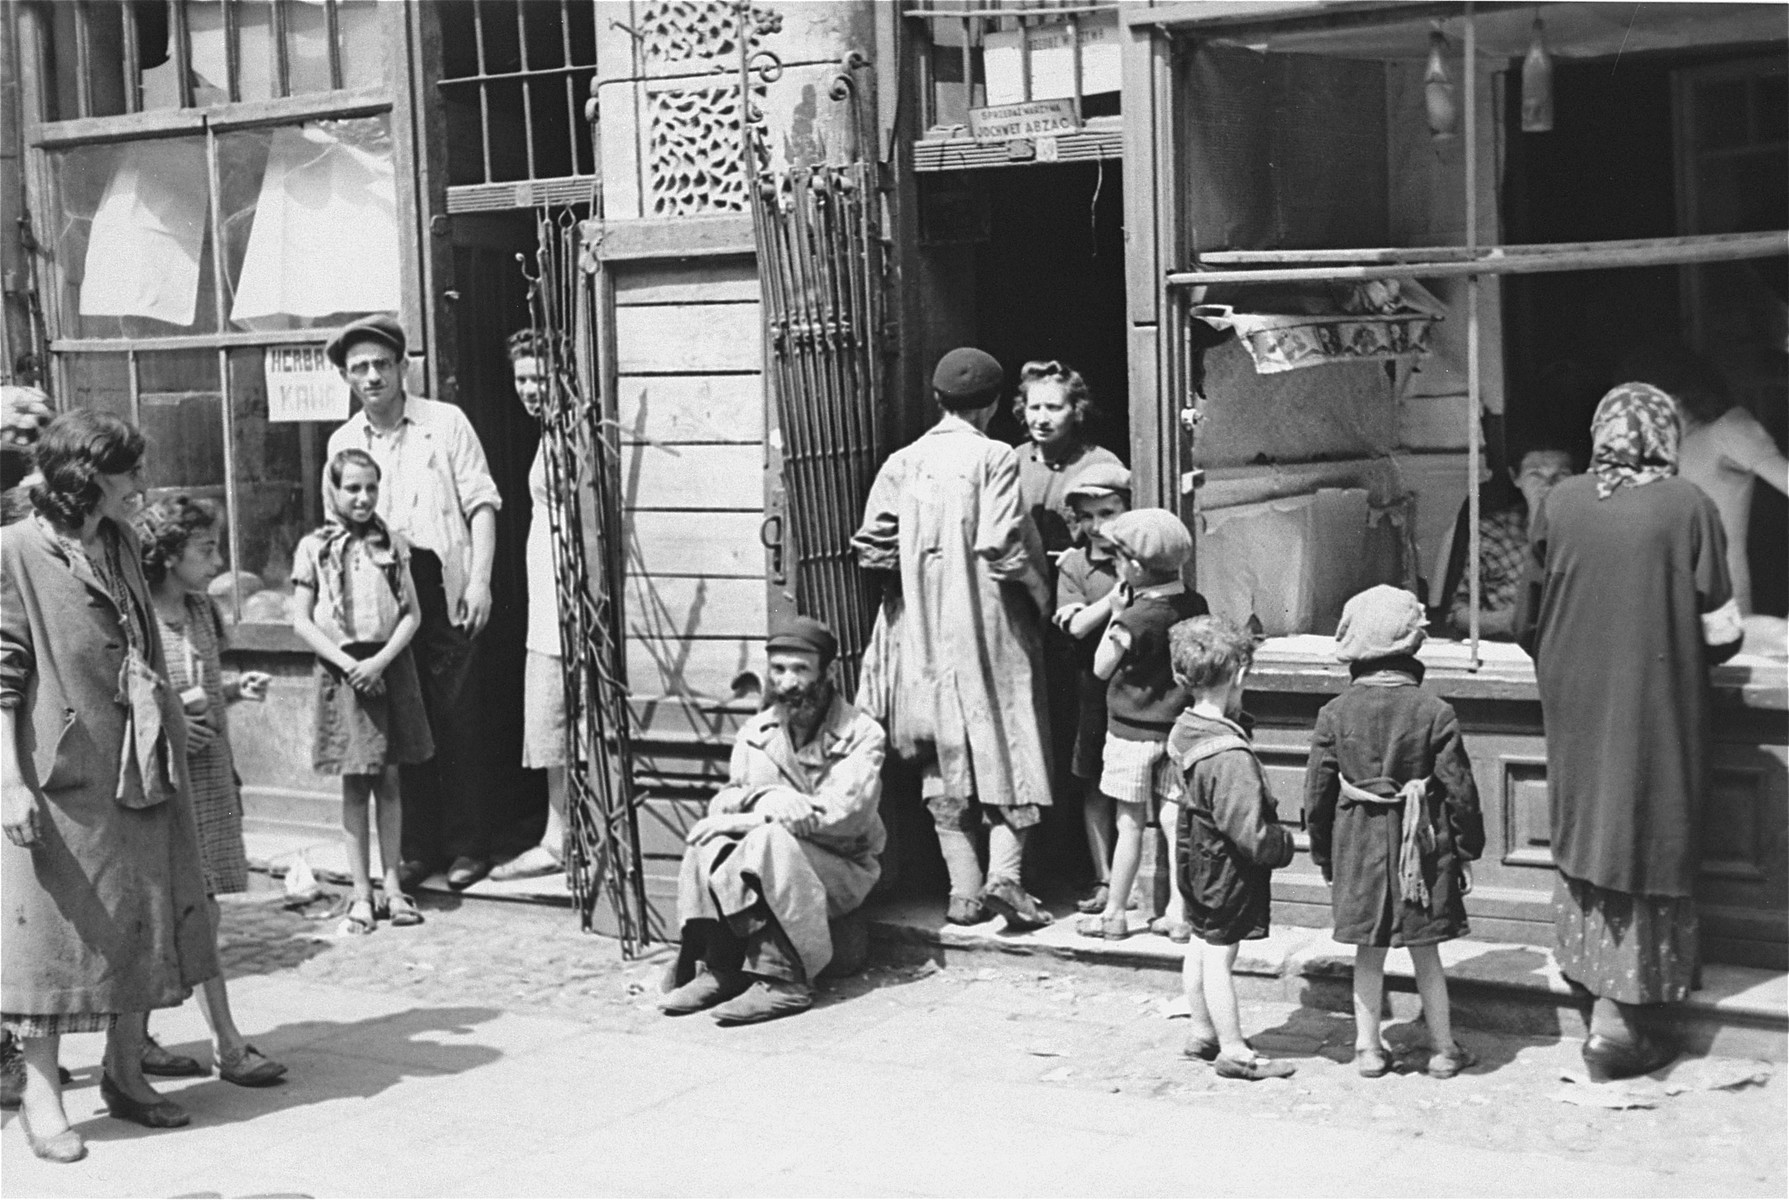 A group of Jews are gathered in front of a vegetable store owned by Jochewet Abzac in the Warsaw ghetto.